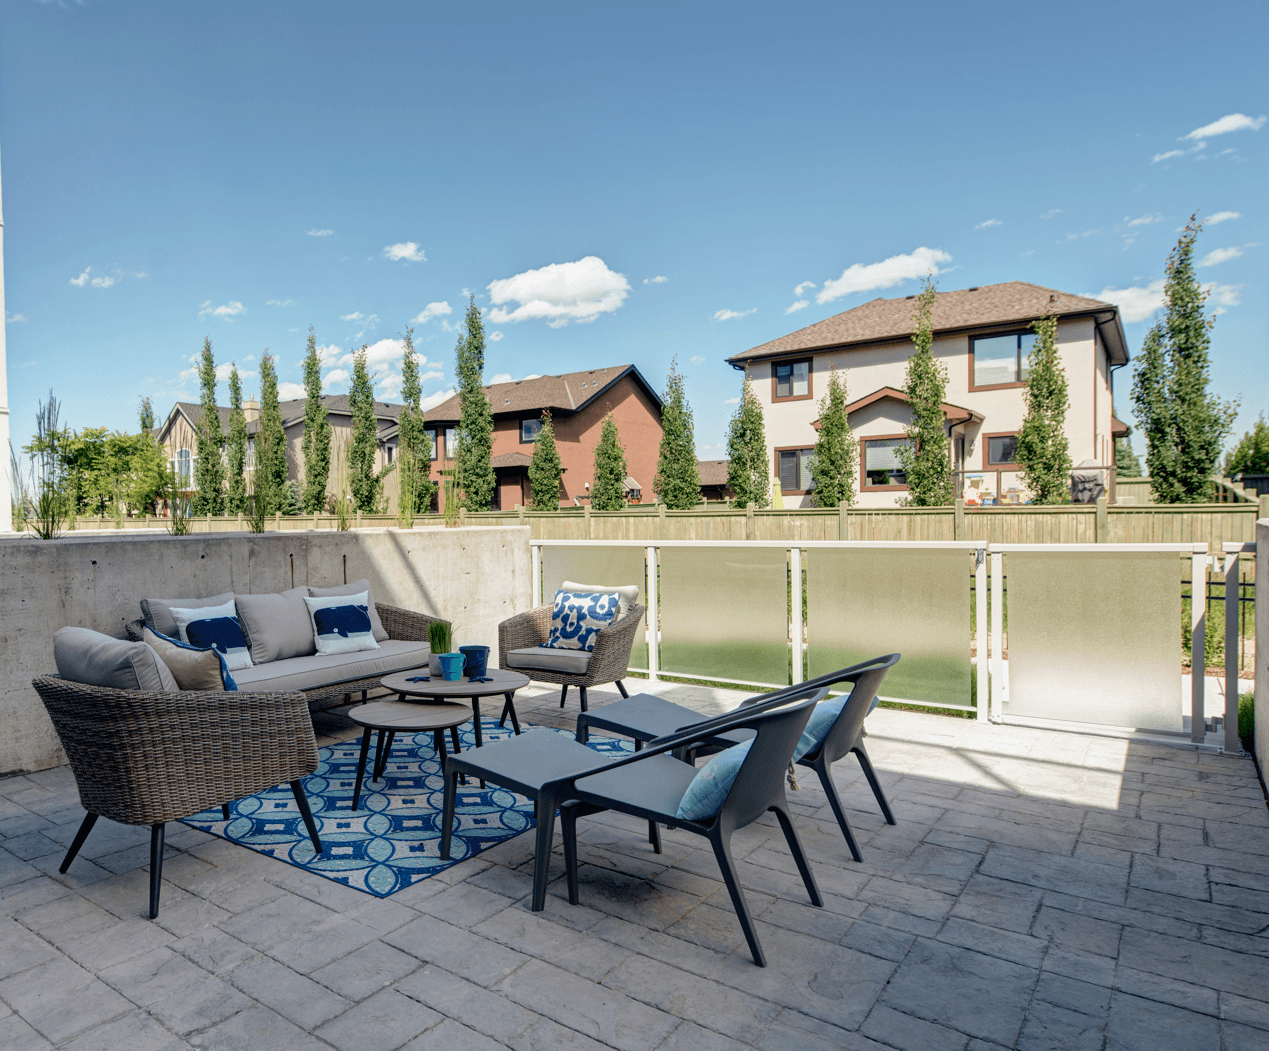 9 Questions to Ask Before Buying a Townhome Patio Image